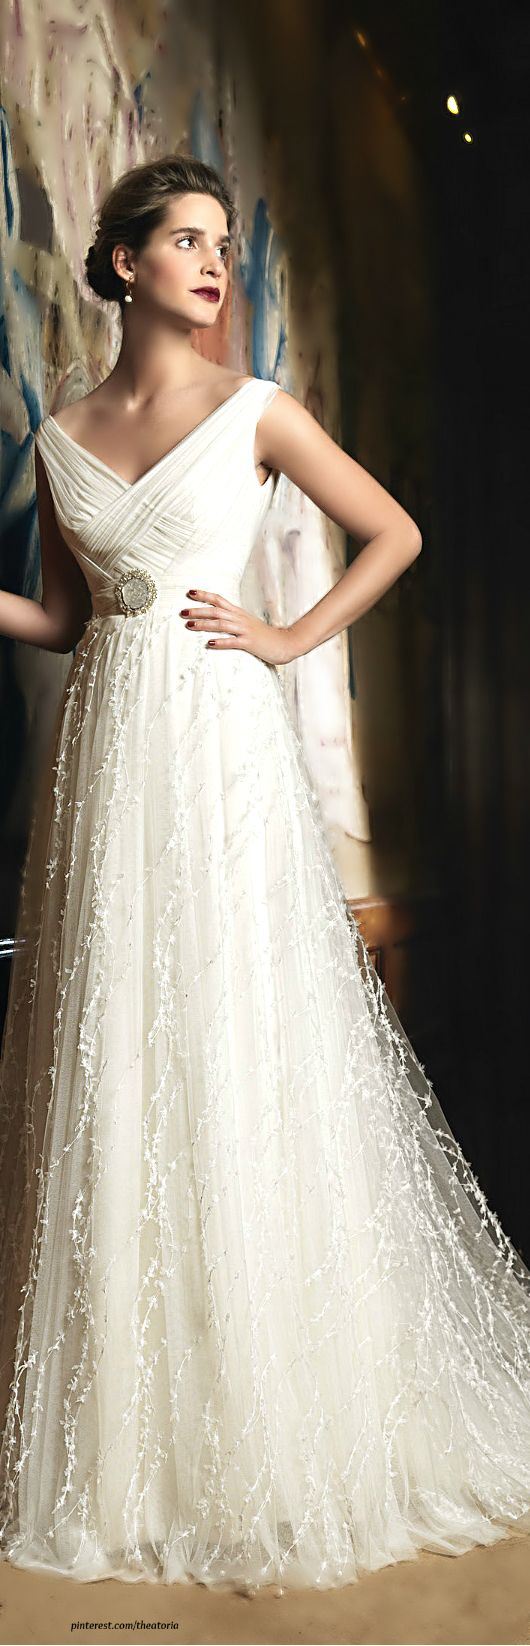 1027 best Wedding Dresses images on Pinterest | Wedding frocks ...